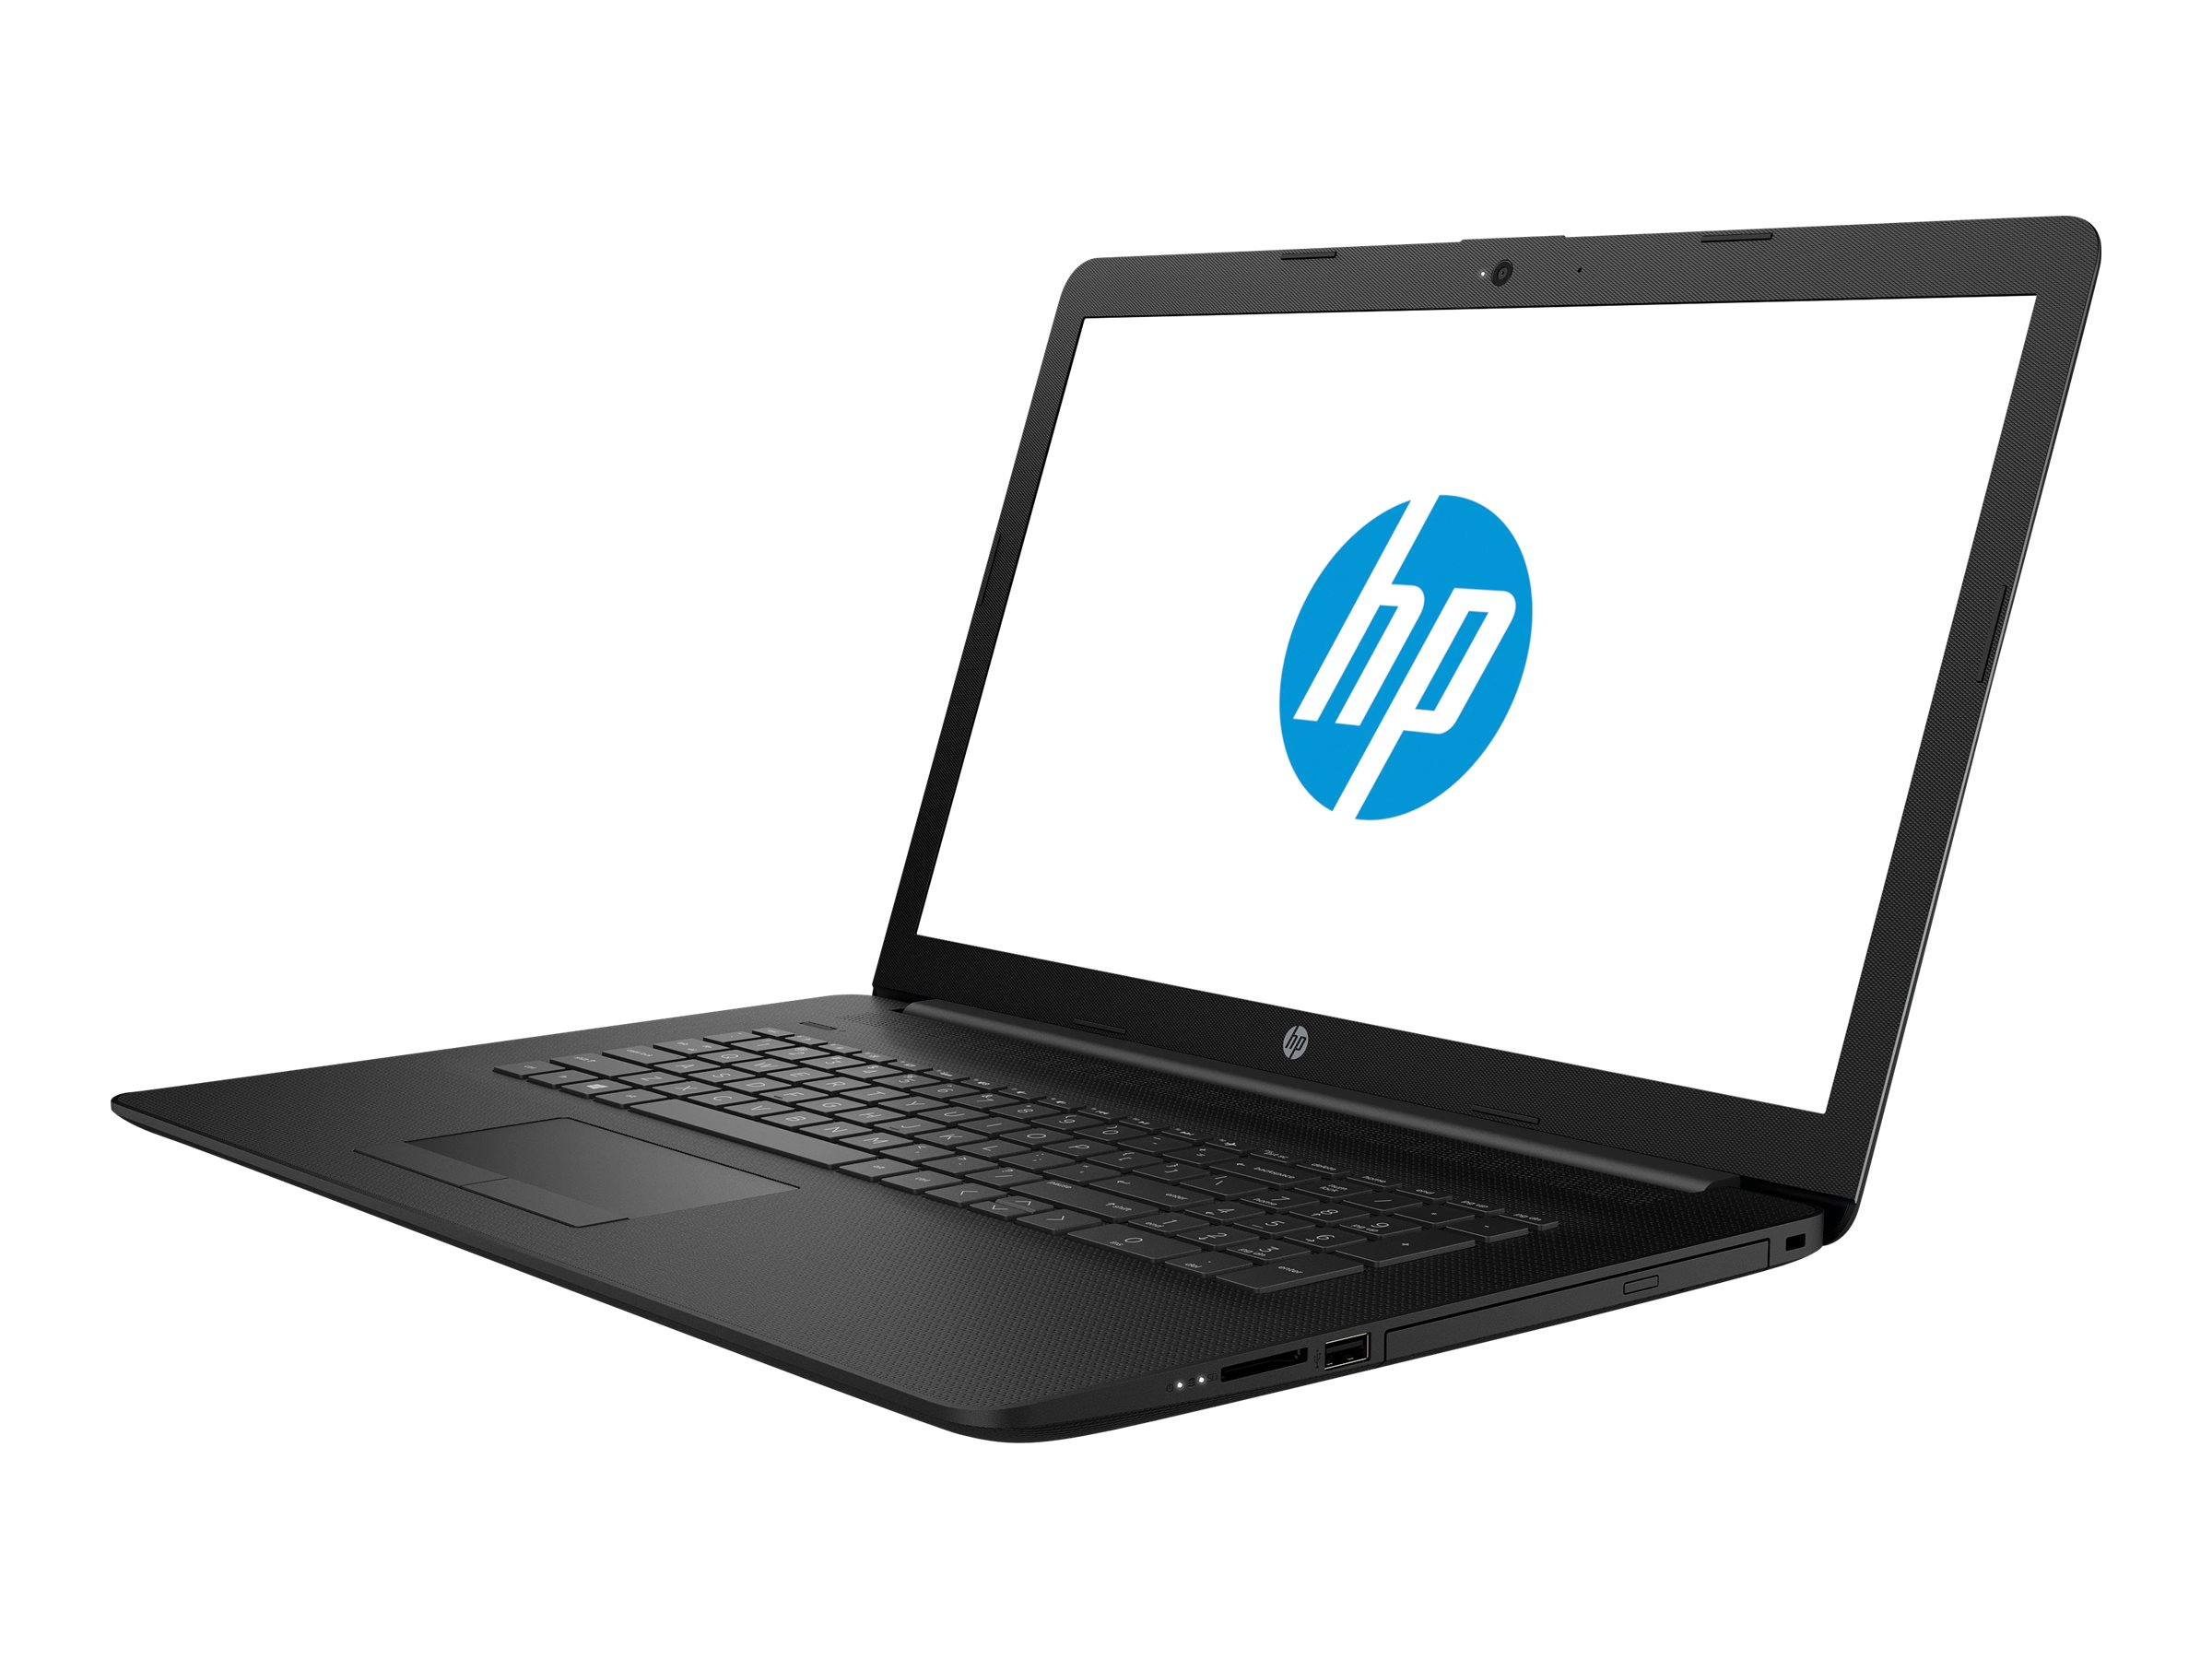 "HP 17-by0405ng - Pentium Gold 4417U / 2.3 GHz - FreeDOS 2.0 - 8 GB RAM - 1 TB HDD - DVD-Writer - 43.9 cm (17.3"")"